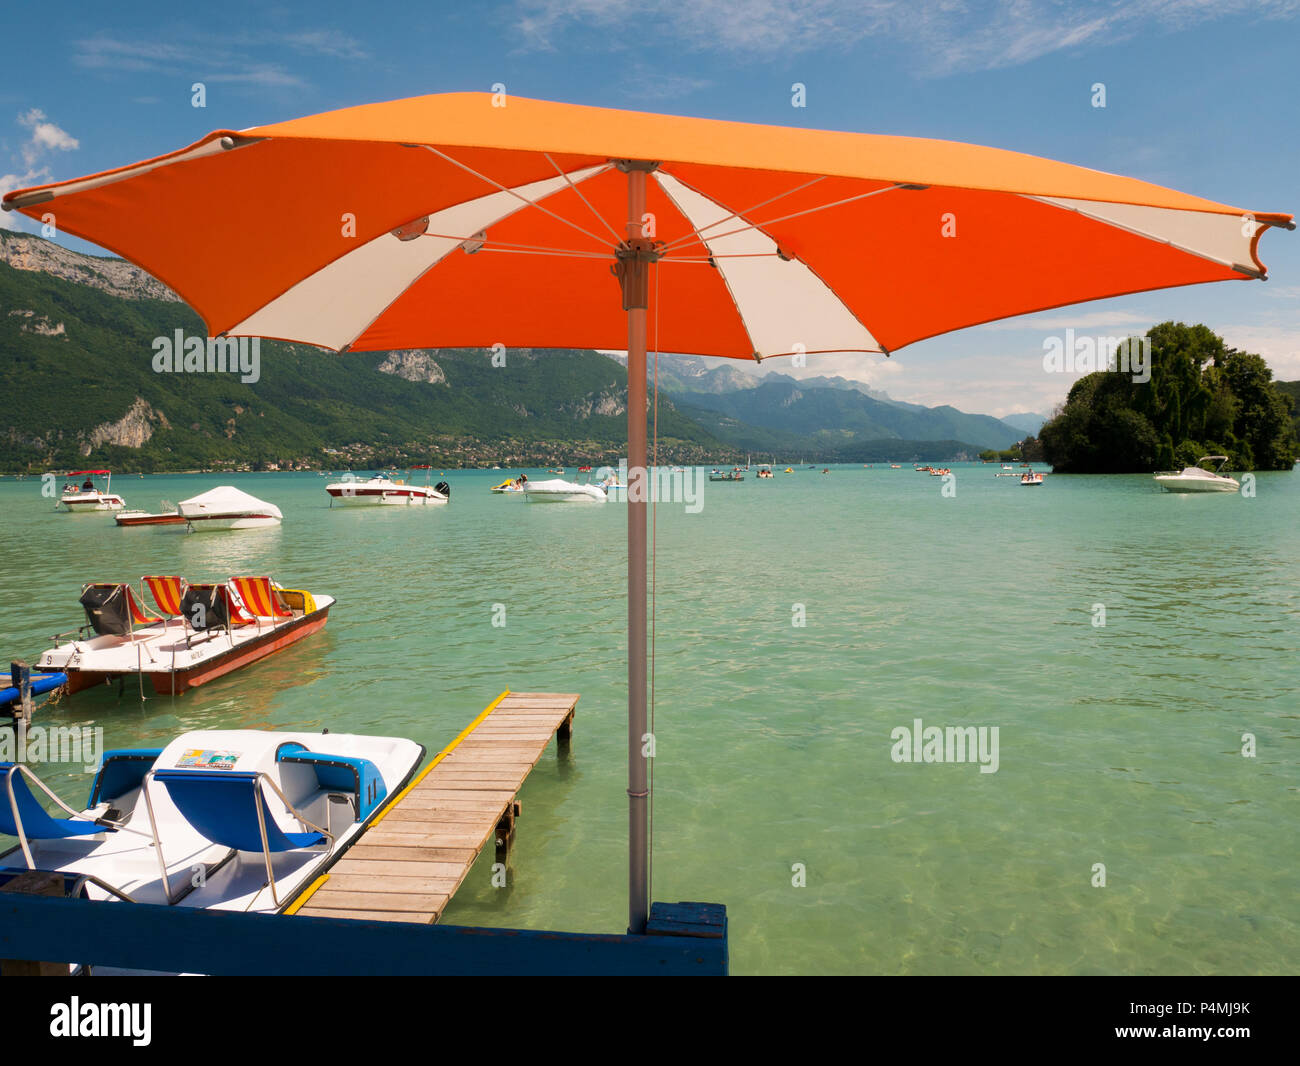 parasol and view on Lake Annecy, France - Stock Image